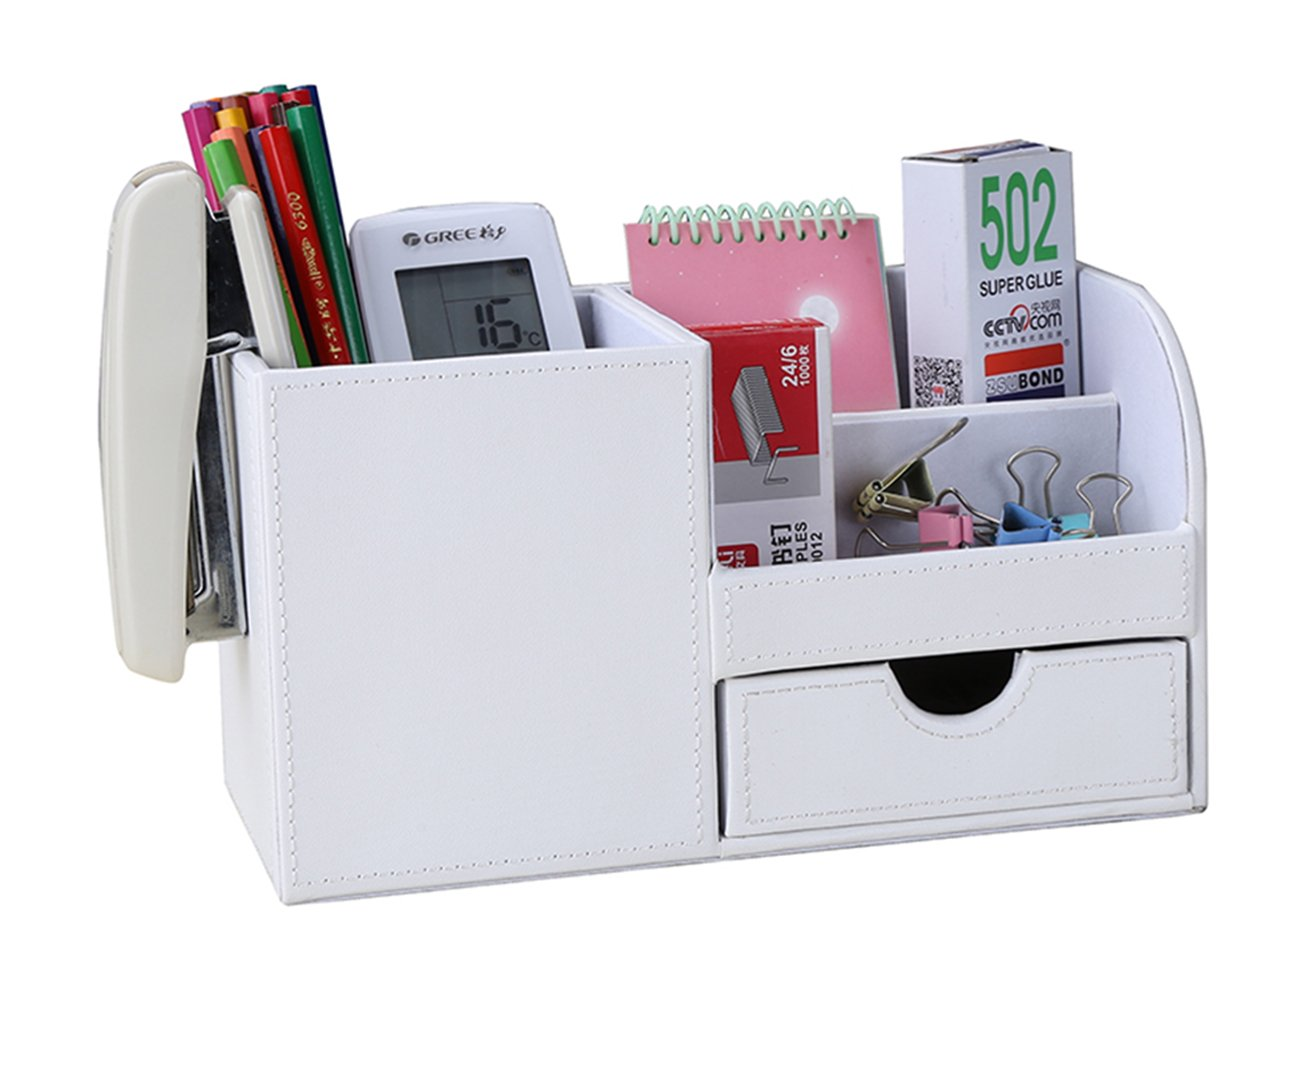 KINGFOM Desk Organiser Tidy Caddy Leather Pen Pencil Pots Holder Stationery  Storage Office Desktop Supplies Organisers with Drawer White